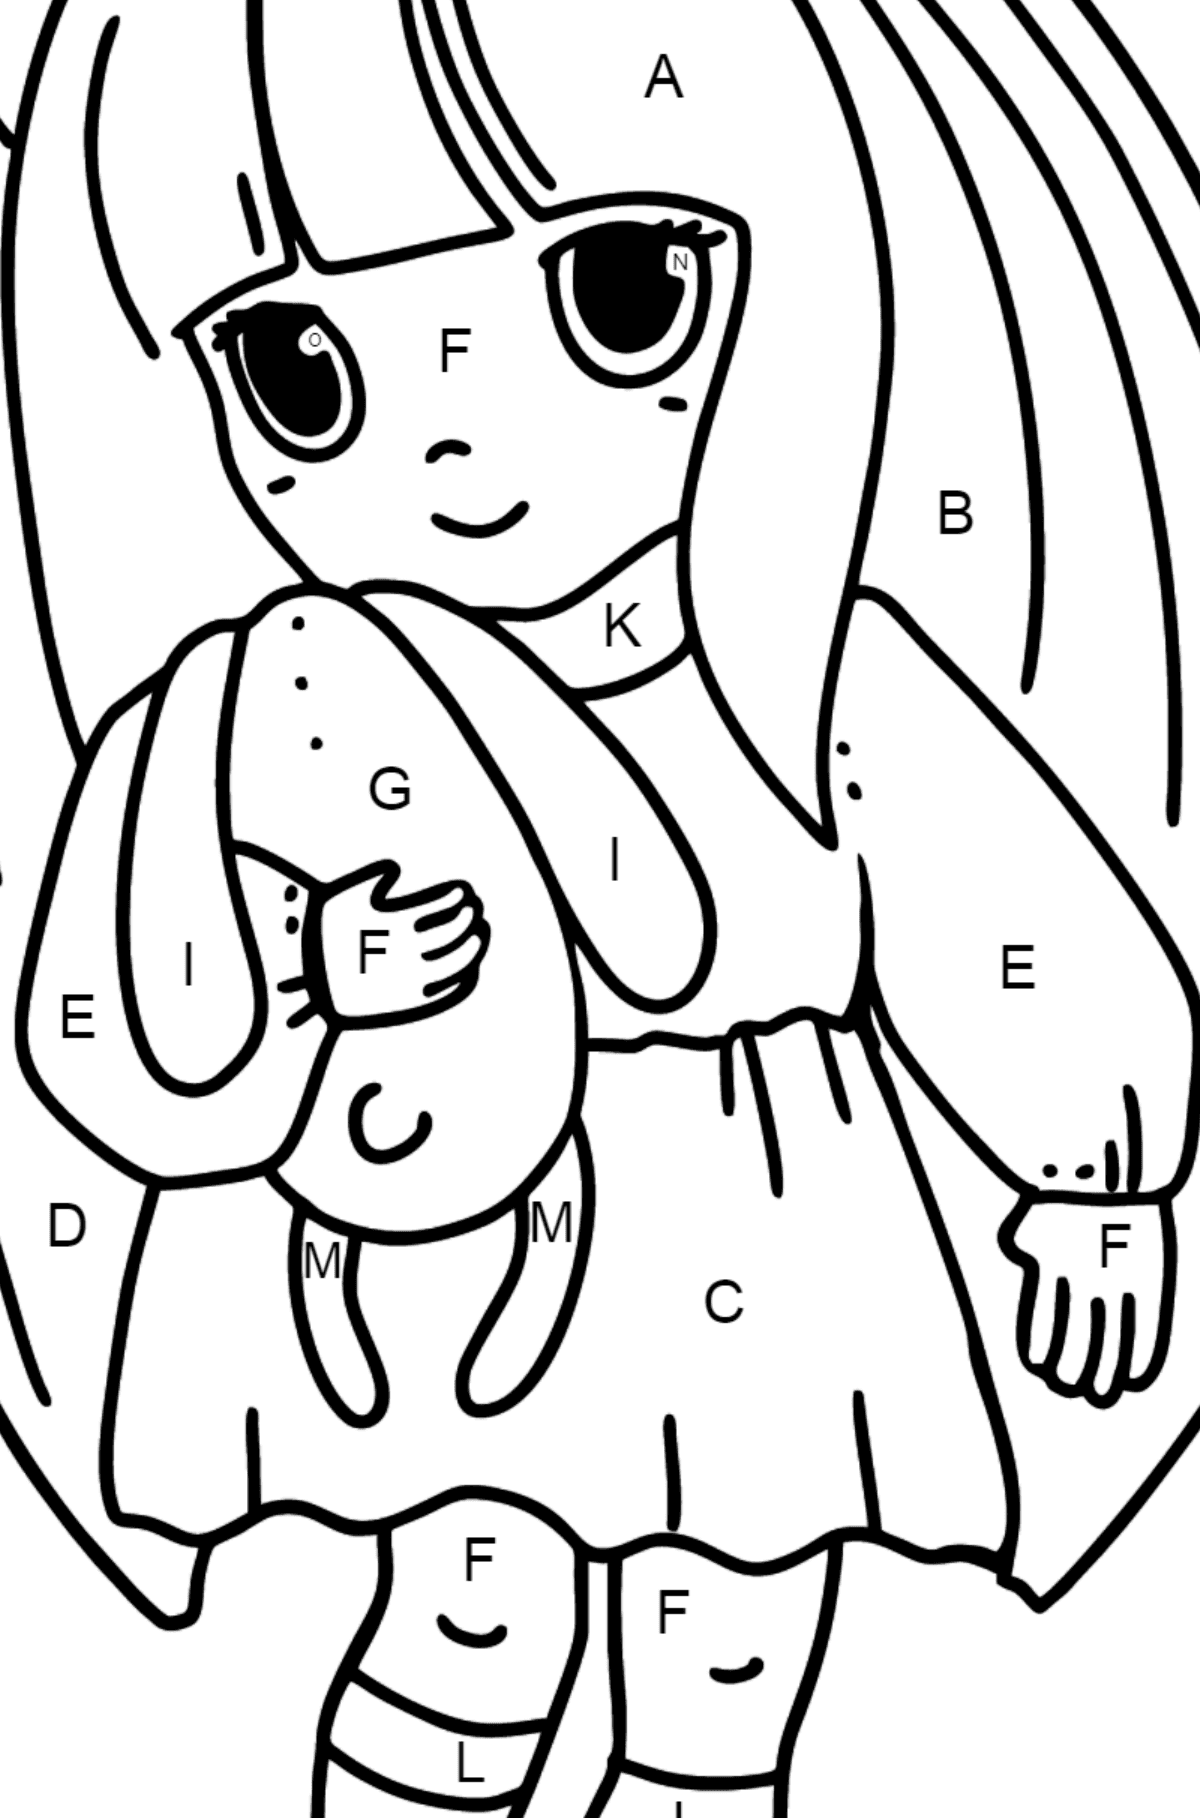 Anime Little Girl Coloring Pages - Coloring by Letters for Kids